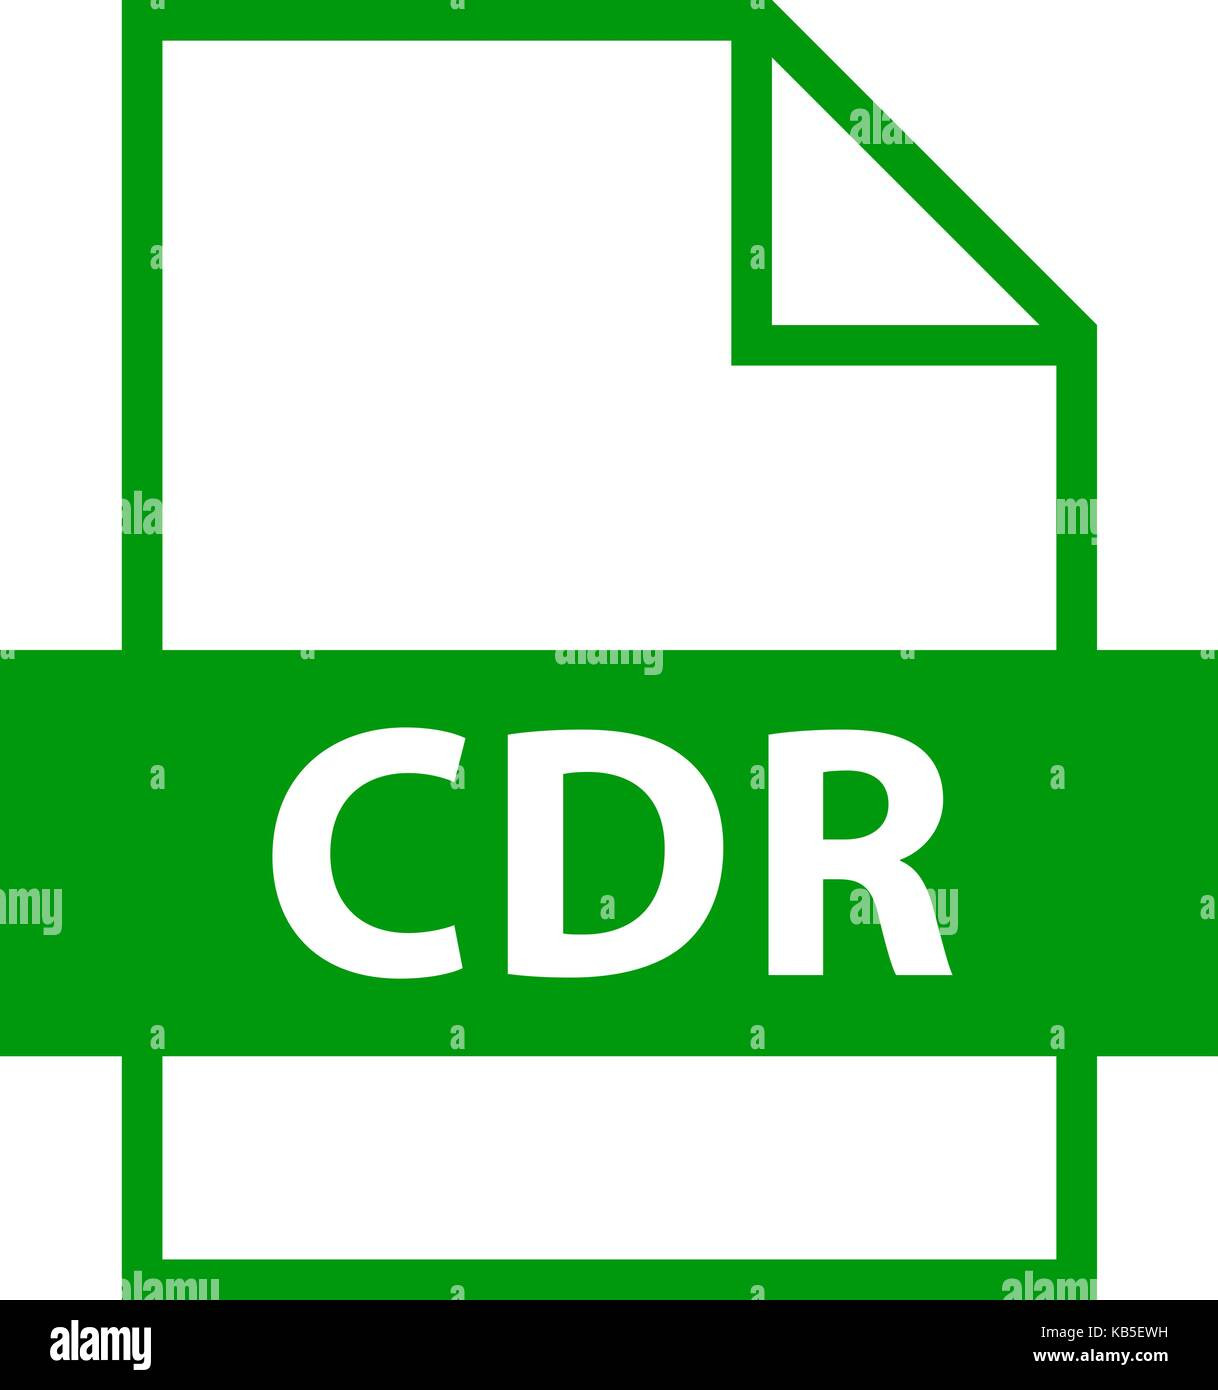 Use it in all your designs. Filename extension icon CDR CorelDRAW file format in flat style. Quick and easy recolorable - Stock Image